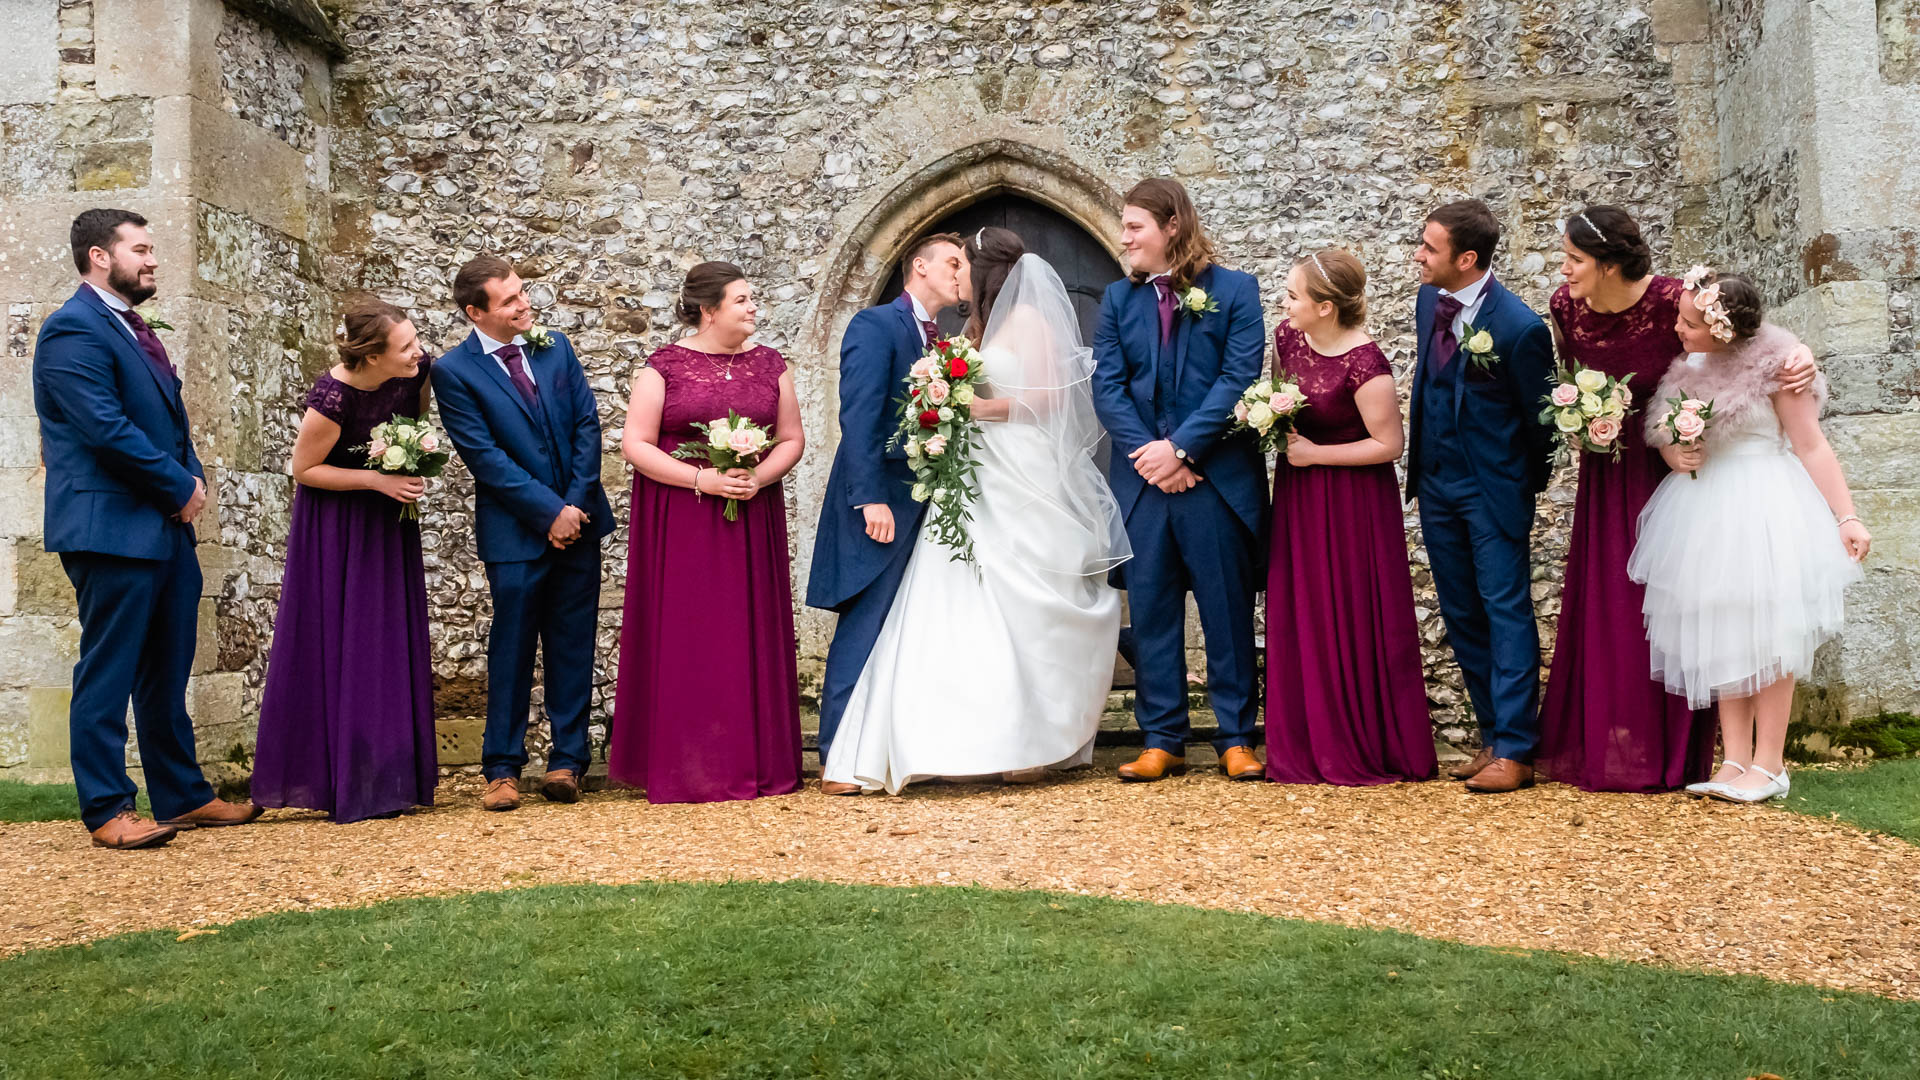 Guests look on as a bride and groom kiss outside an English country church